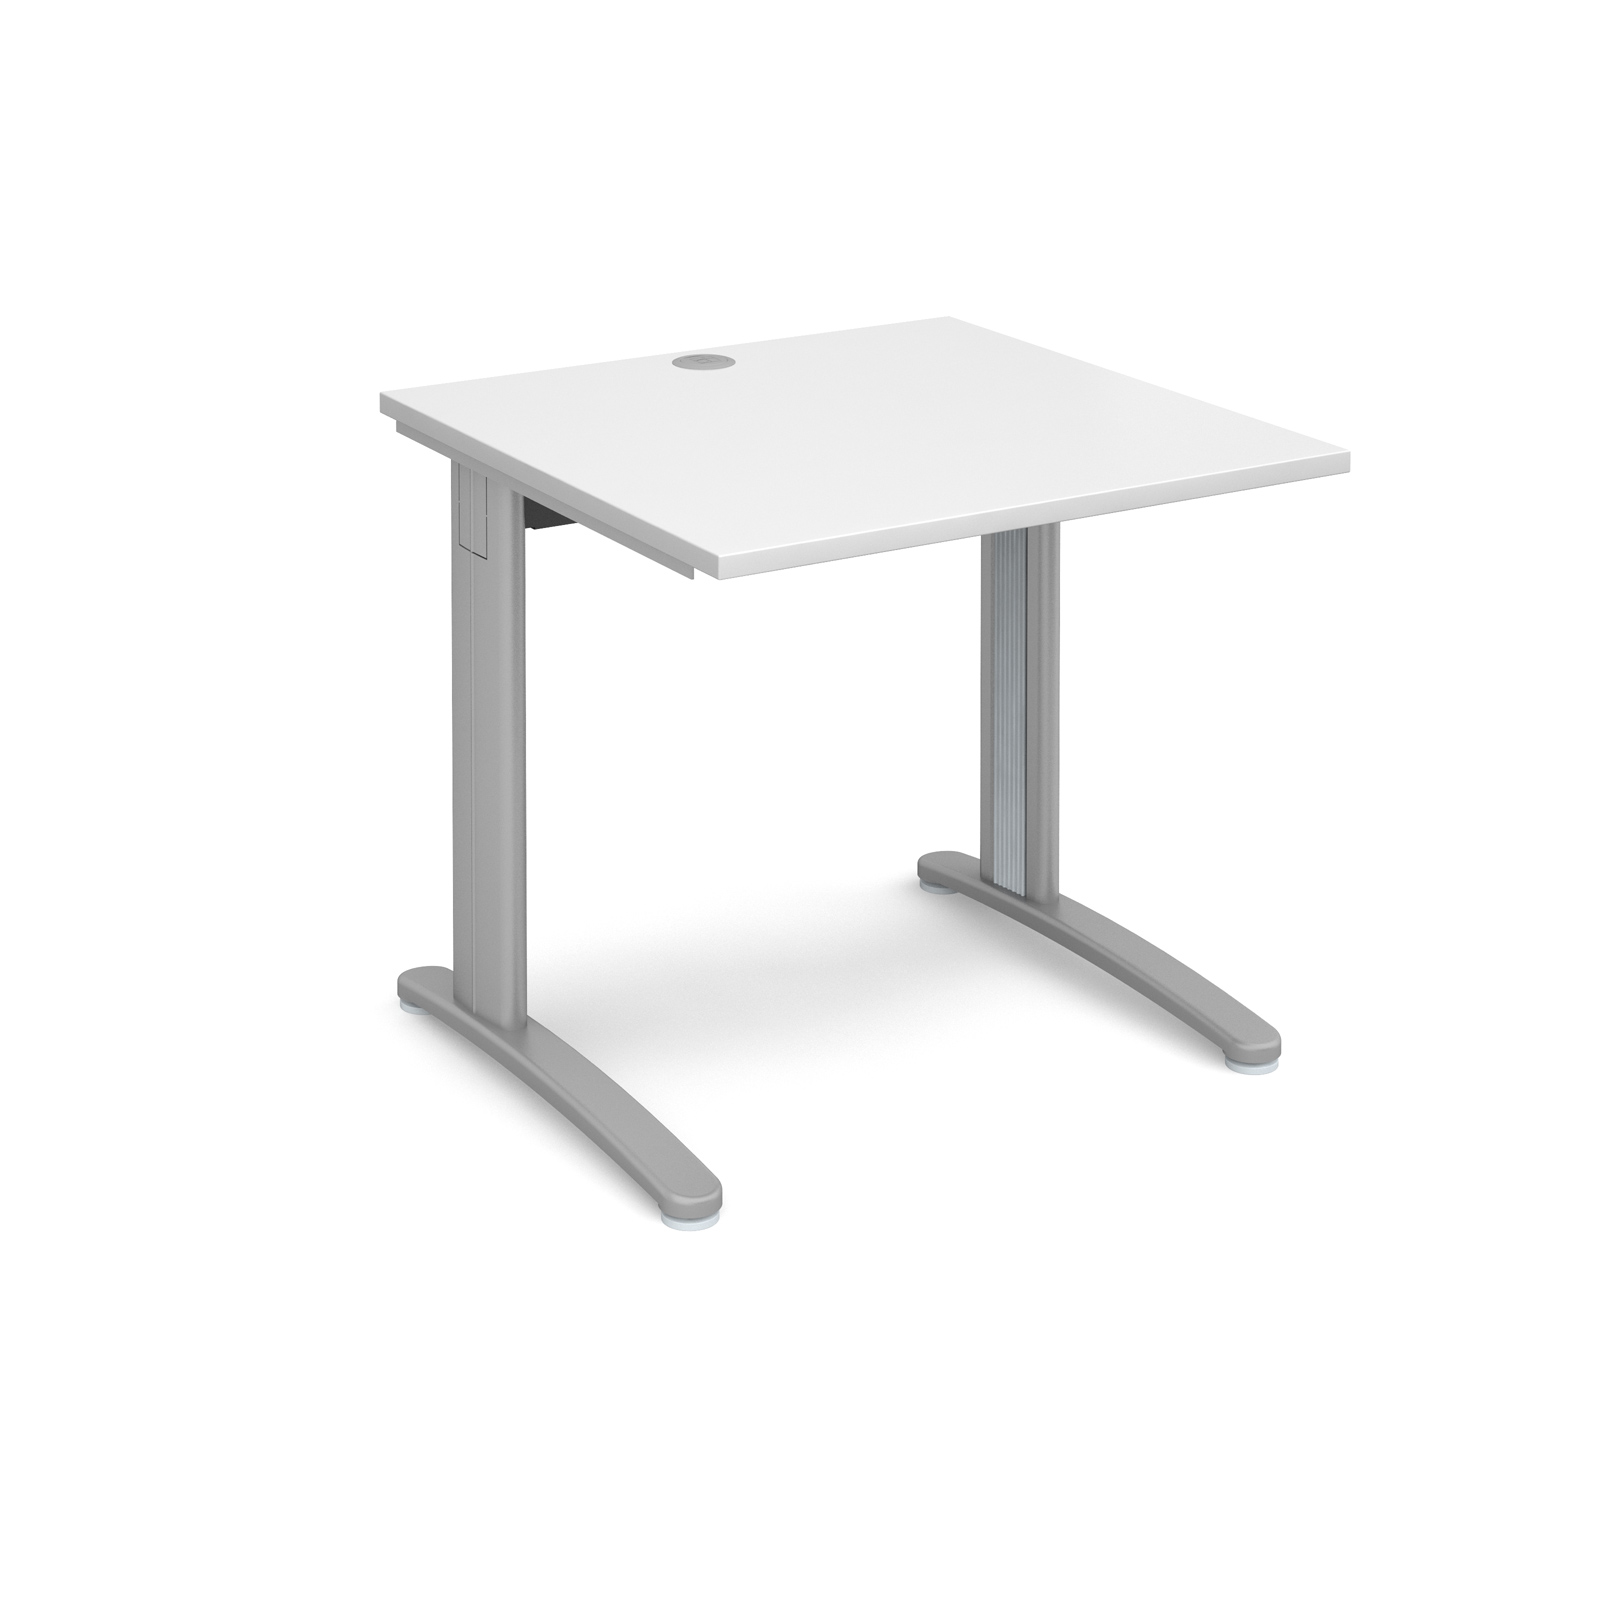 Dams TR10 Cable Manage Straight Desk 800mm White